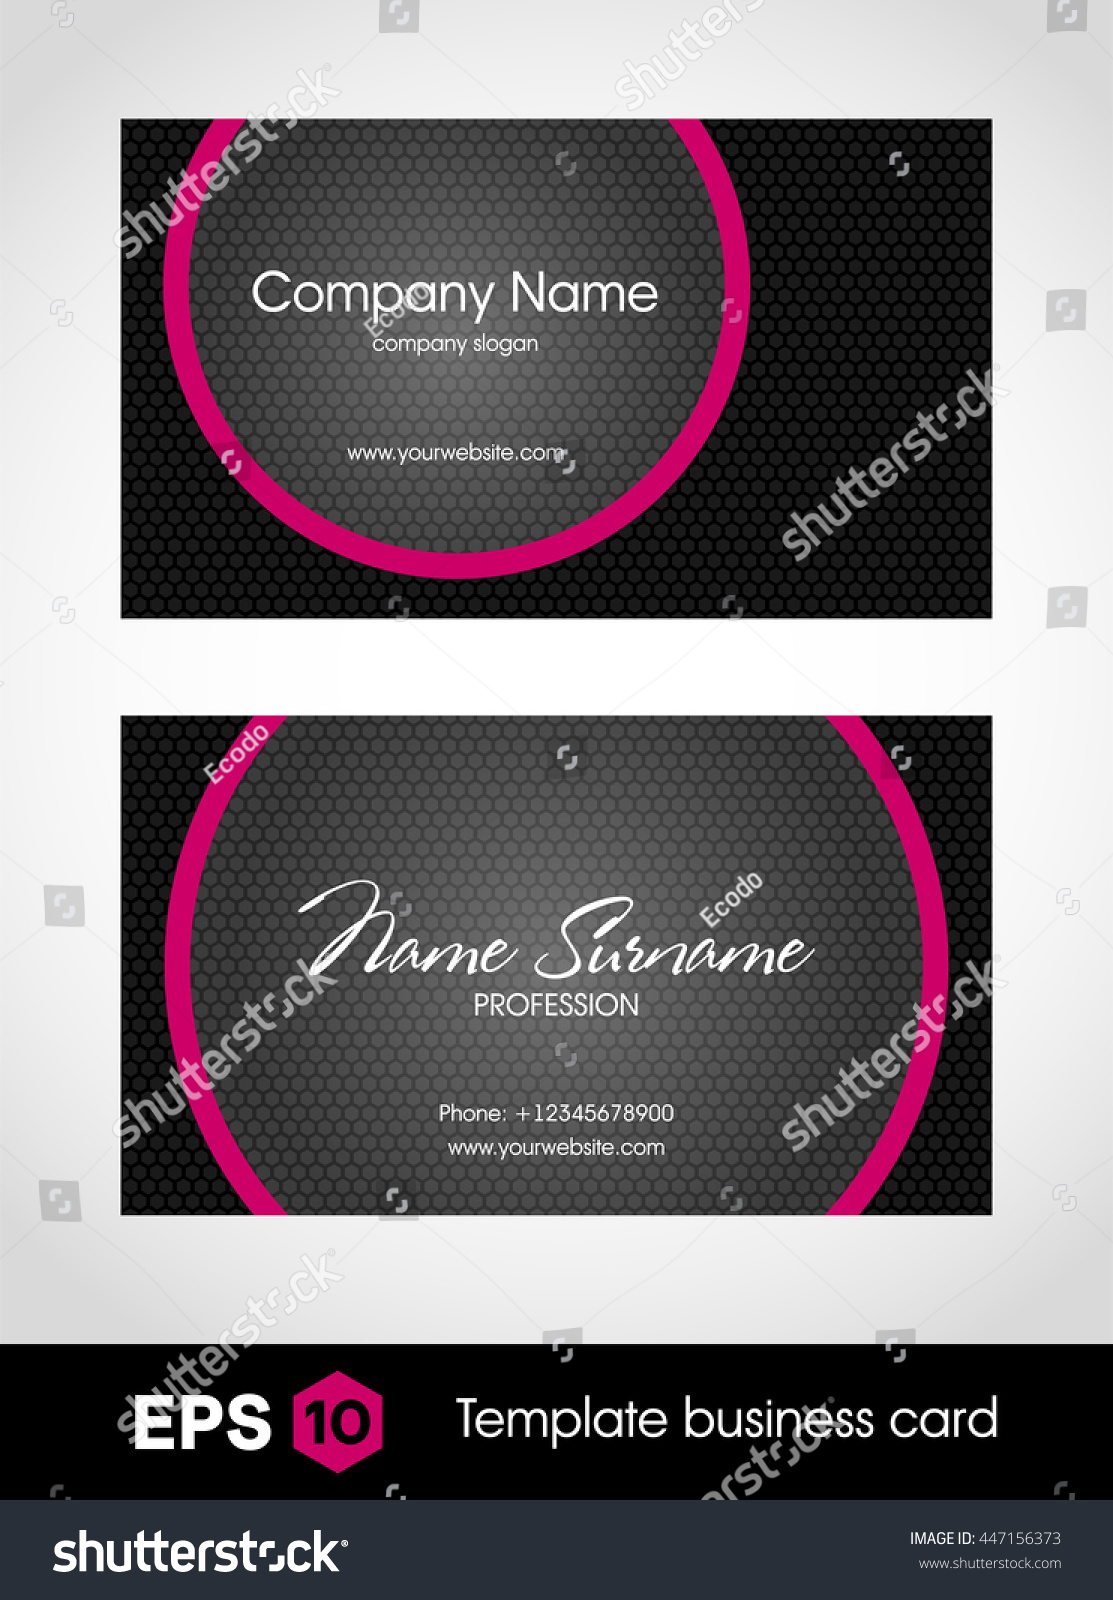 Glamorous Business Card Template Stock Vector 447156373 - Shutterstock